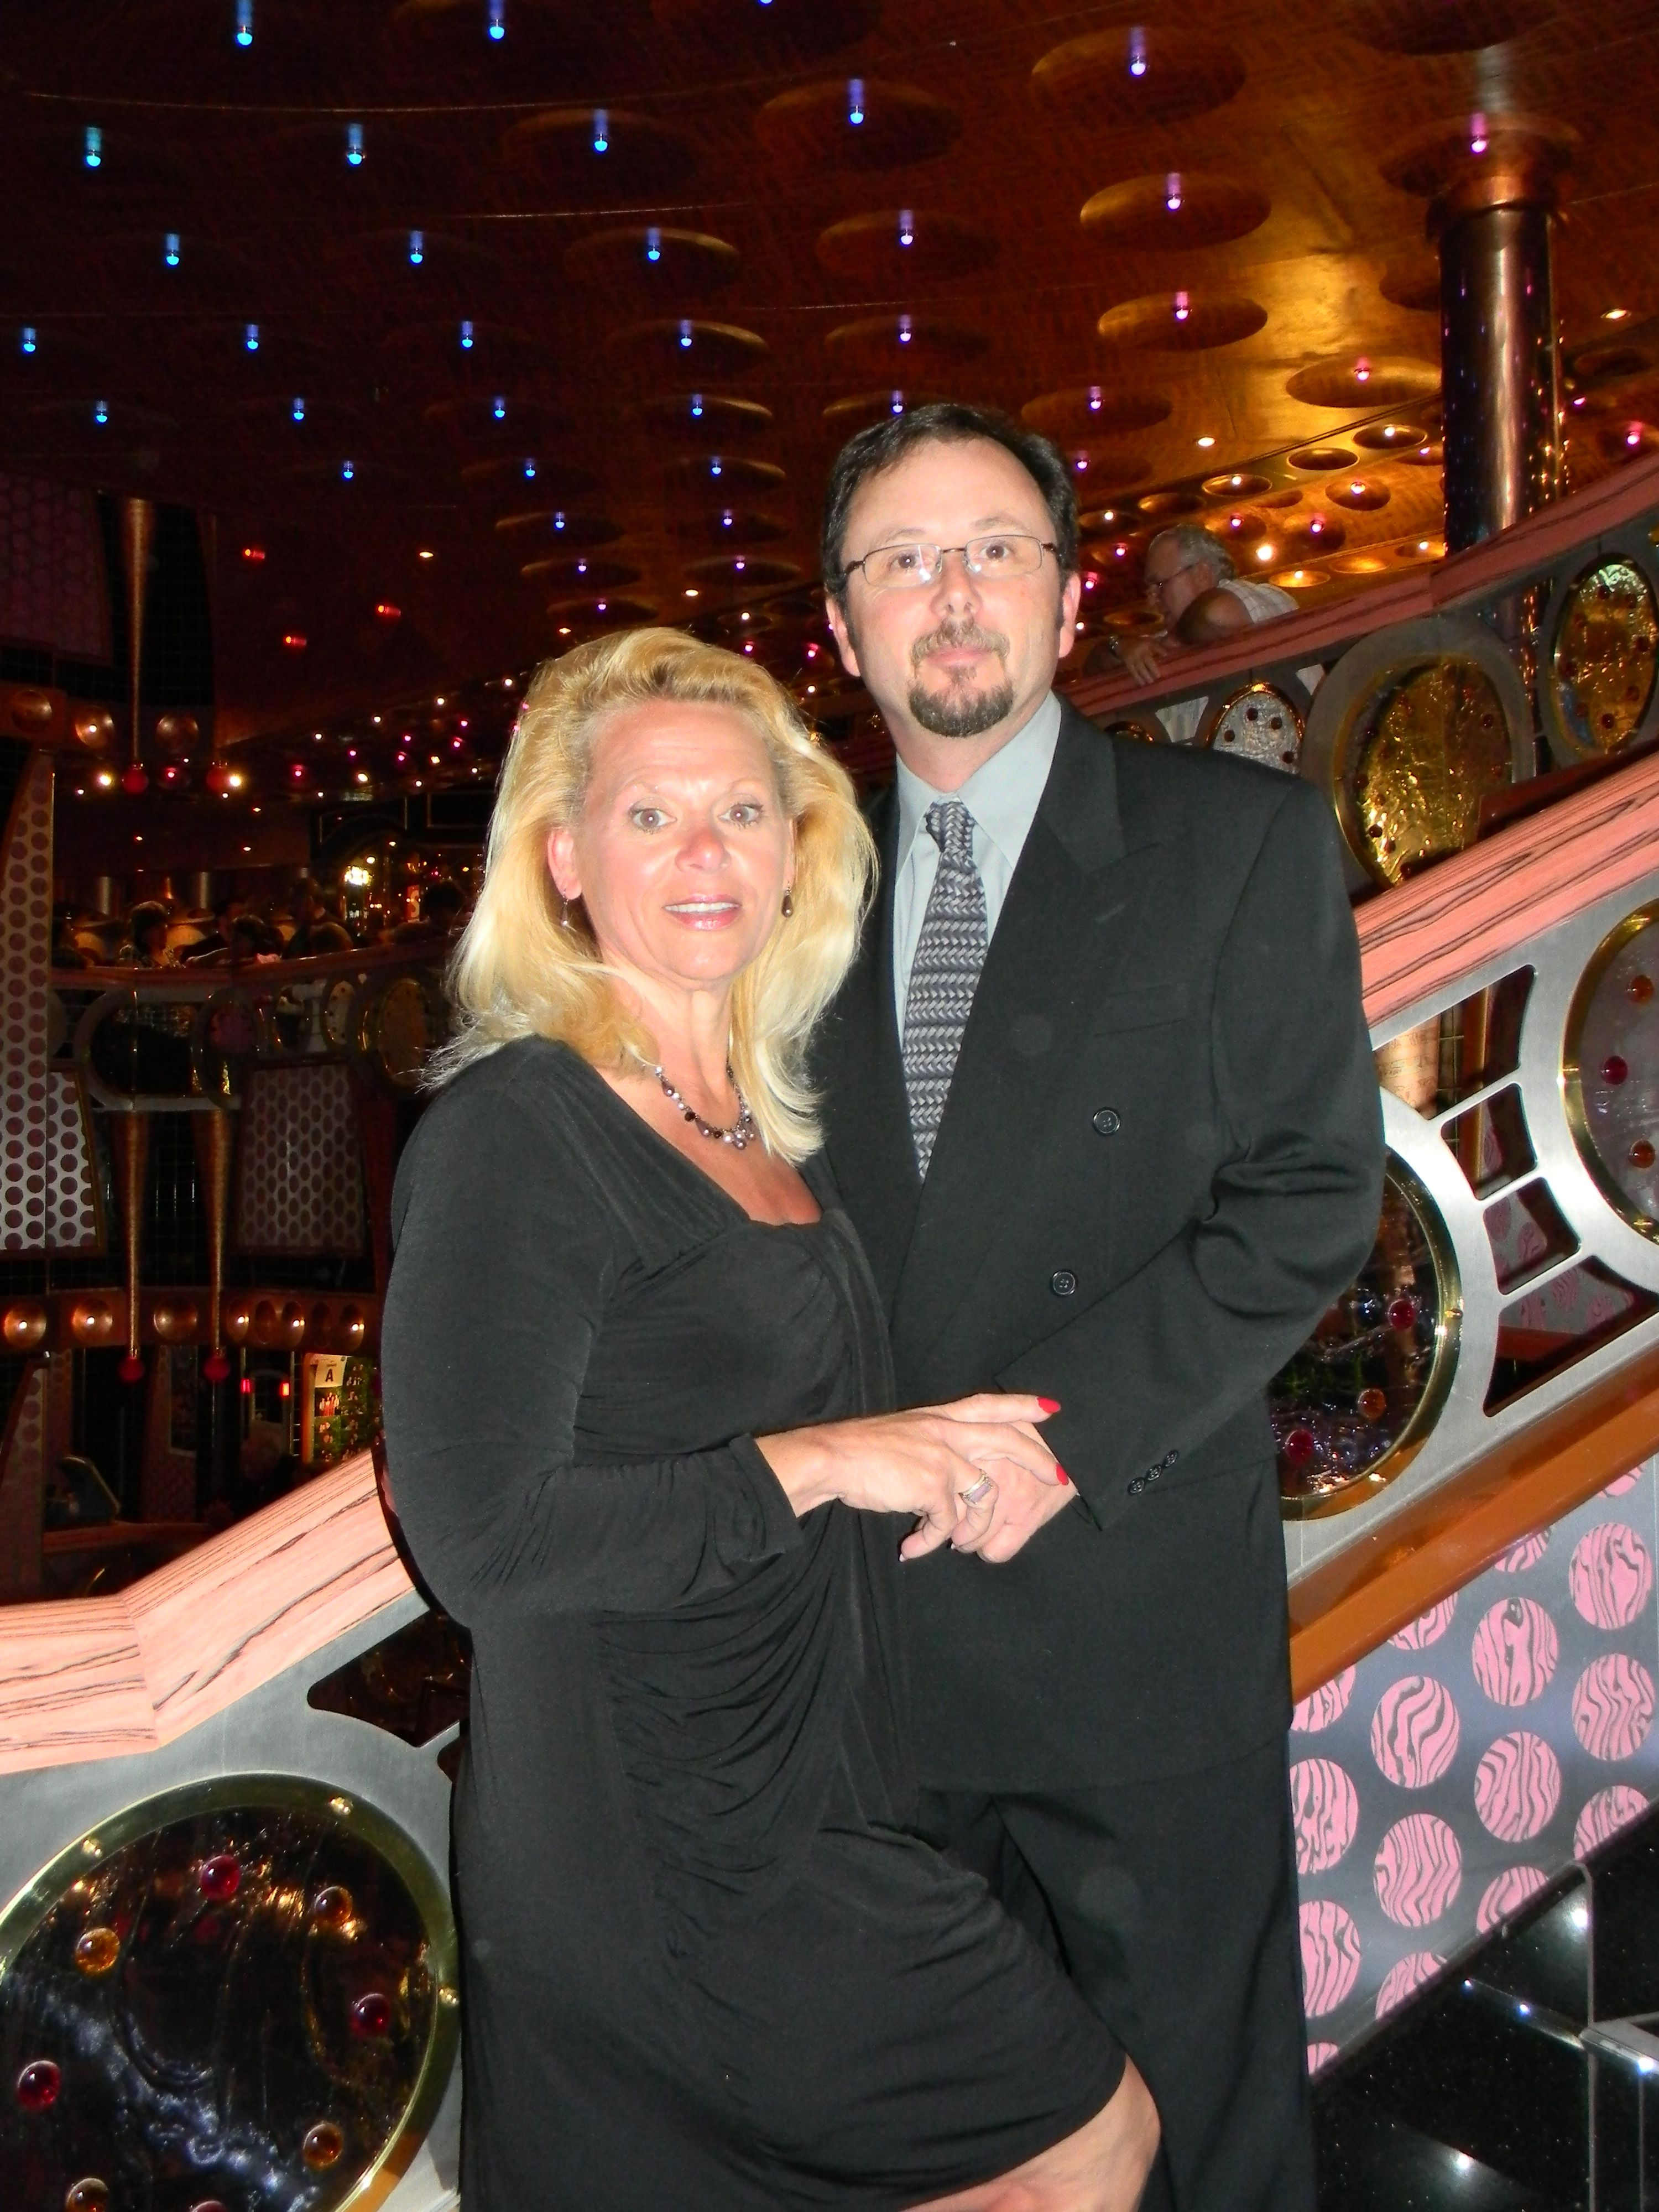 Formal Night On Carnival Cruise Splendor Formal Night